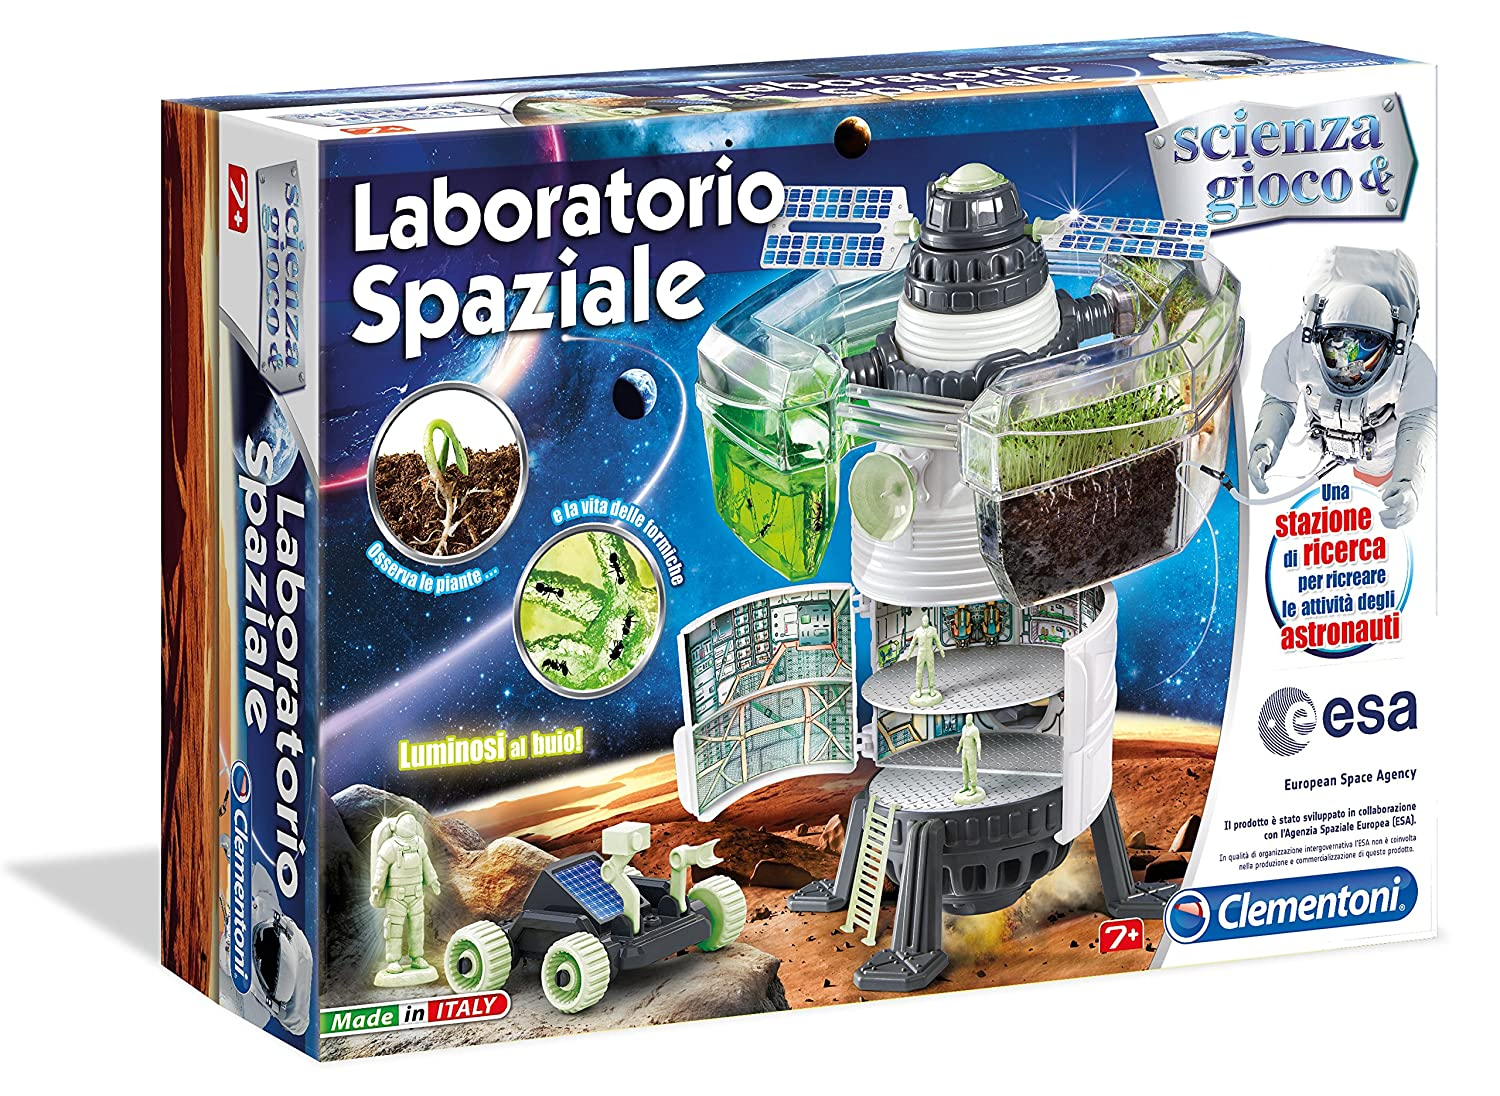 Favorito Clementoni 13917 - Laboratorio Spaziale: Amazon.it: Giochi e  WM34